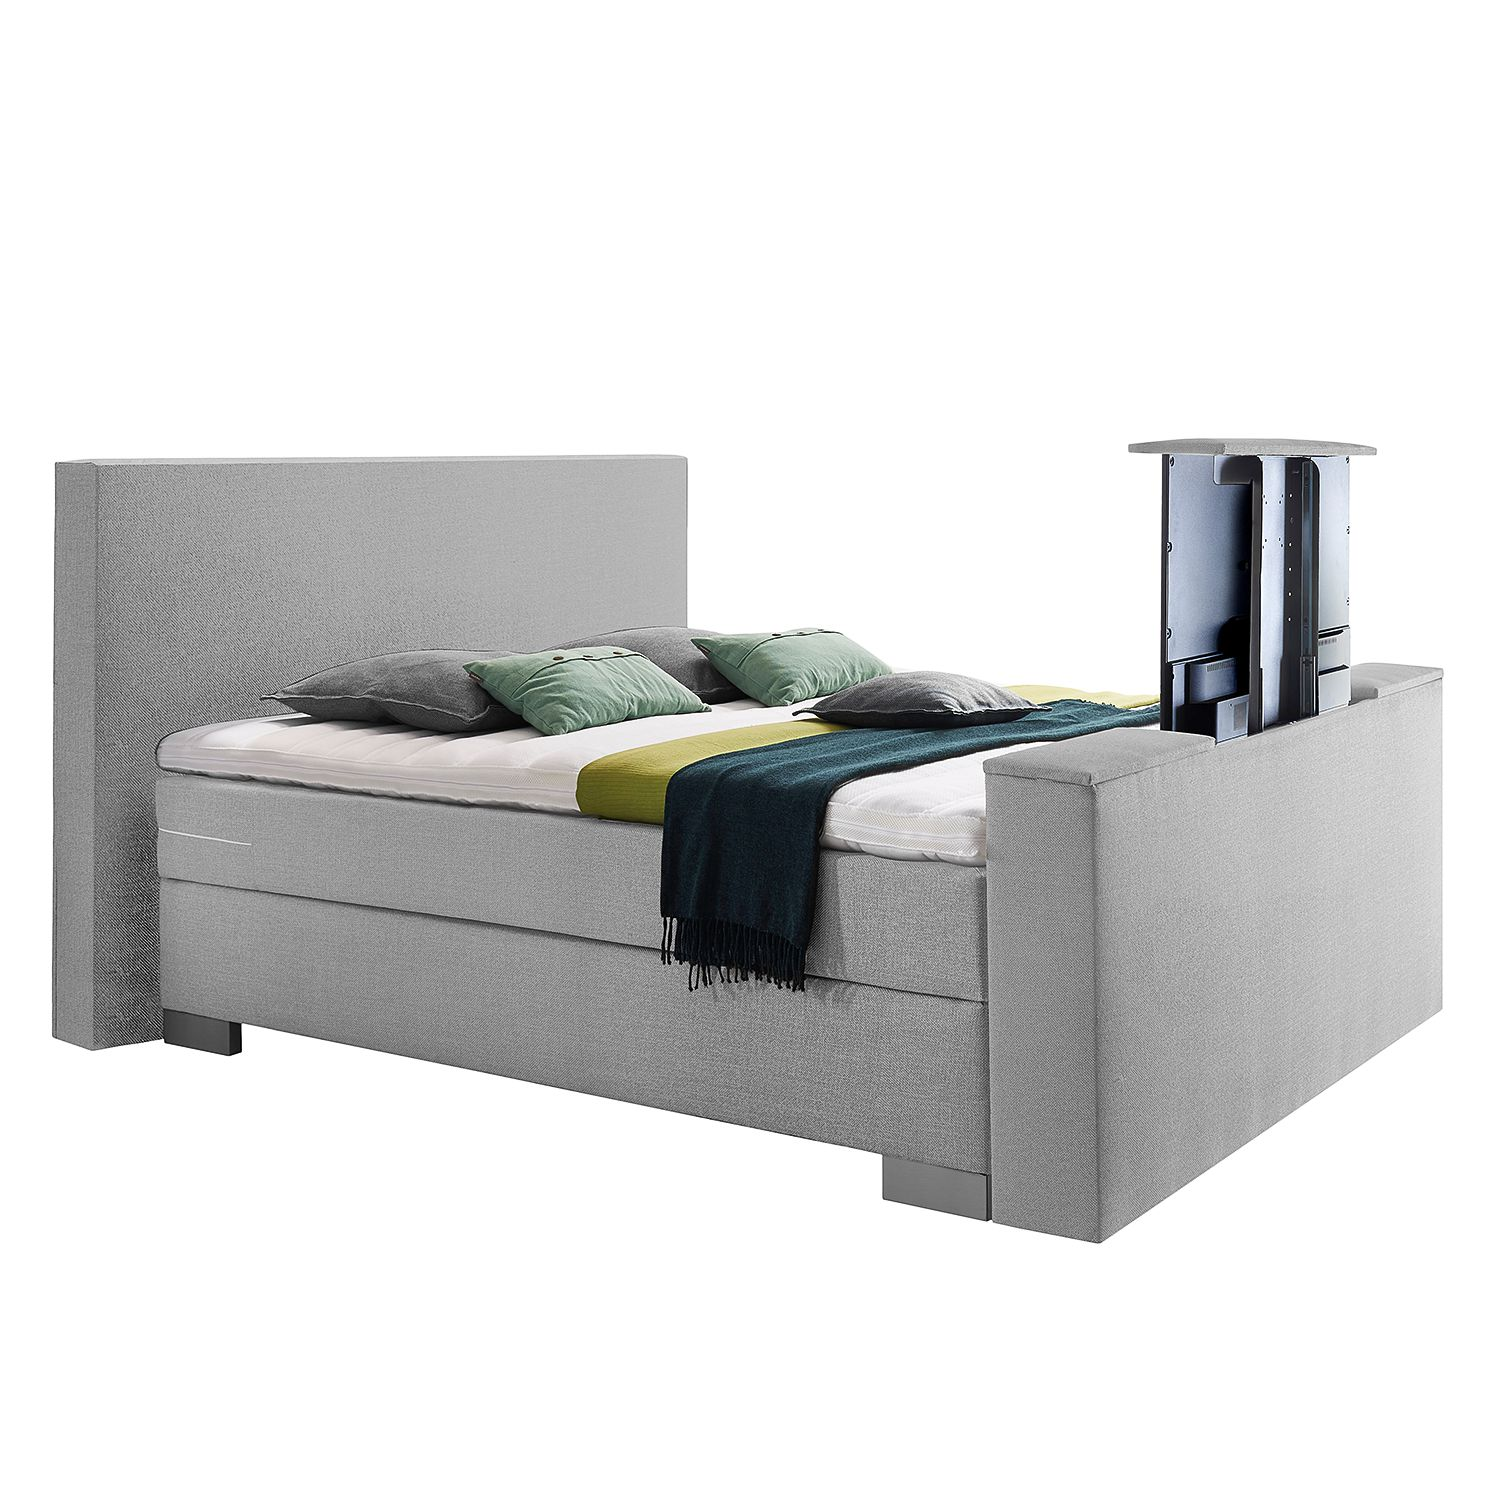 Boxspring Emperial Night II - 200 x 200cm - H2 tot 80kg - Bonellvering - Lichtgrijs, Grand Selection